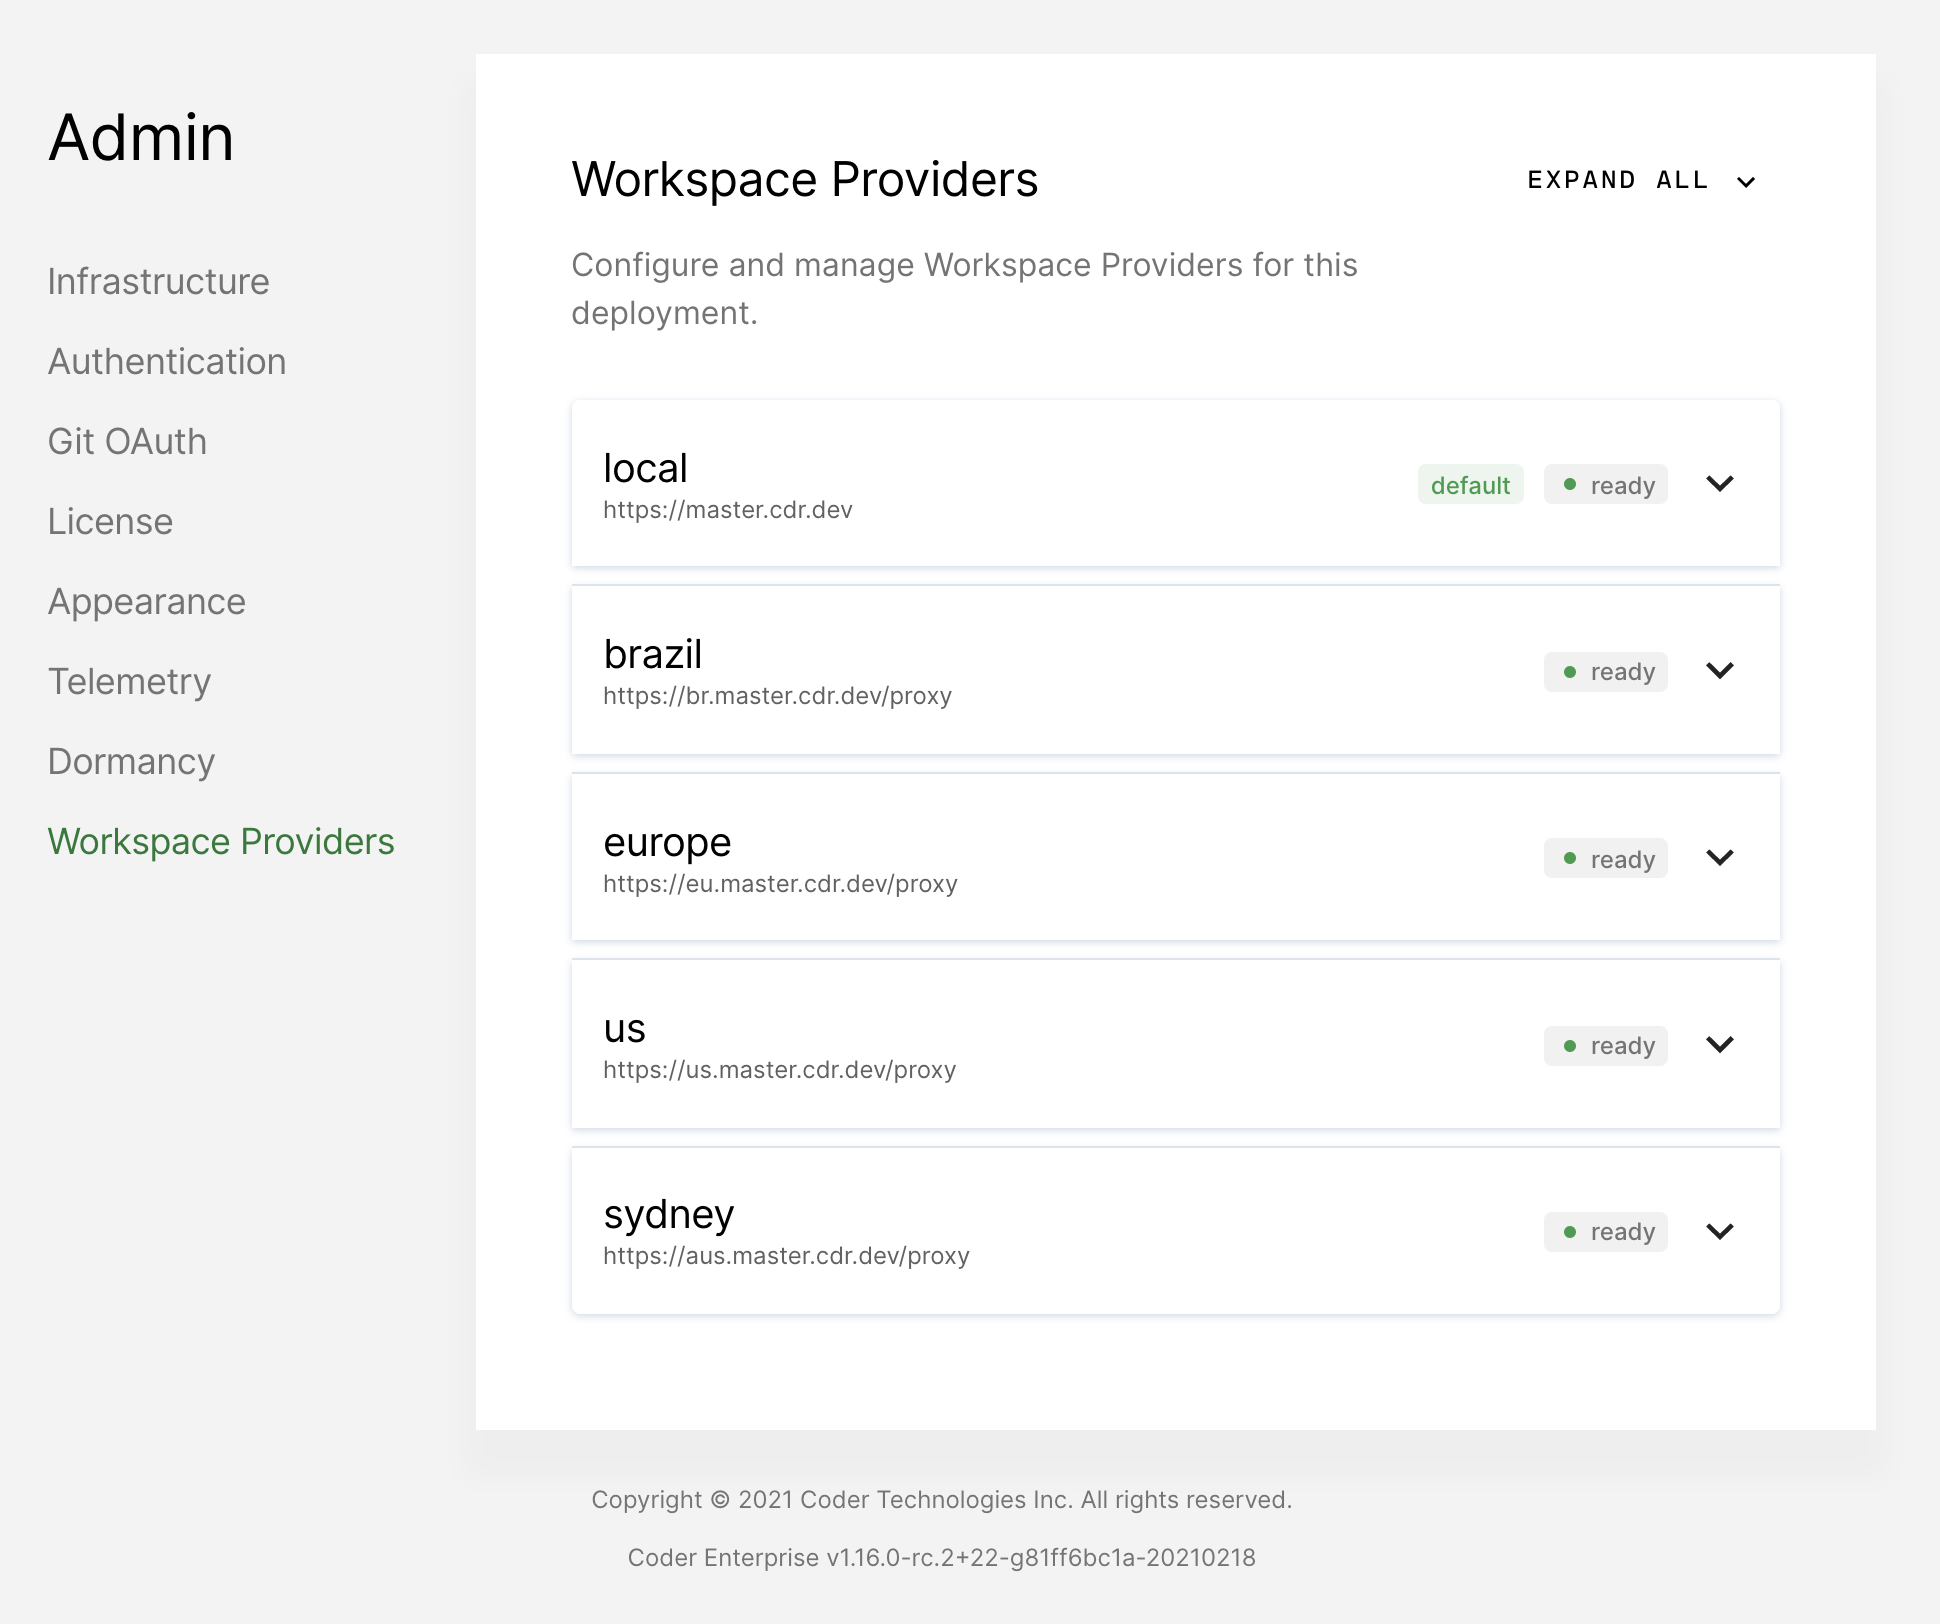 Workspace providers